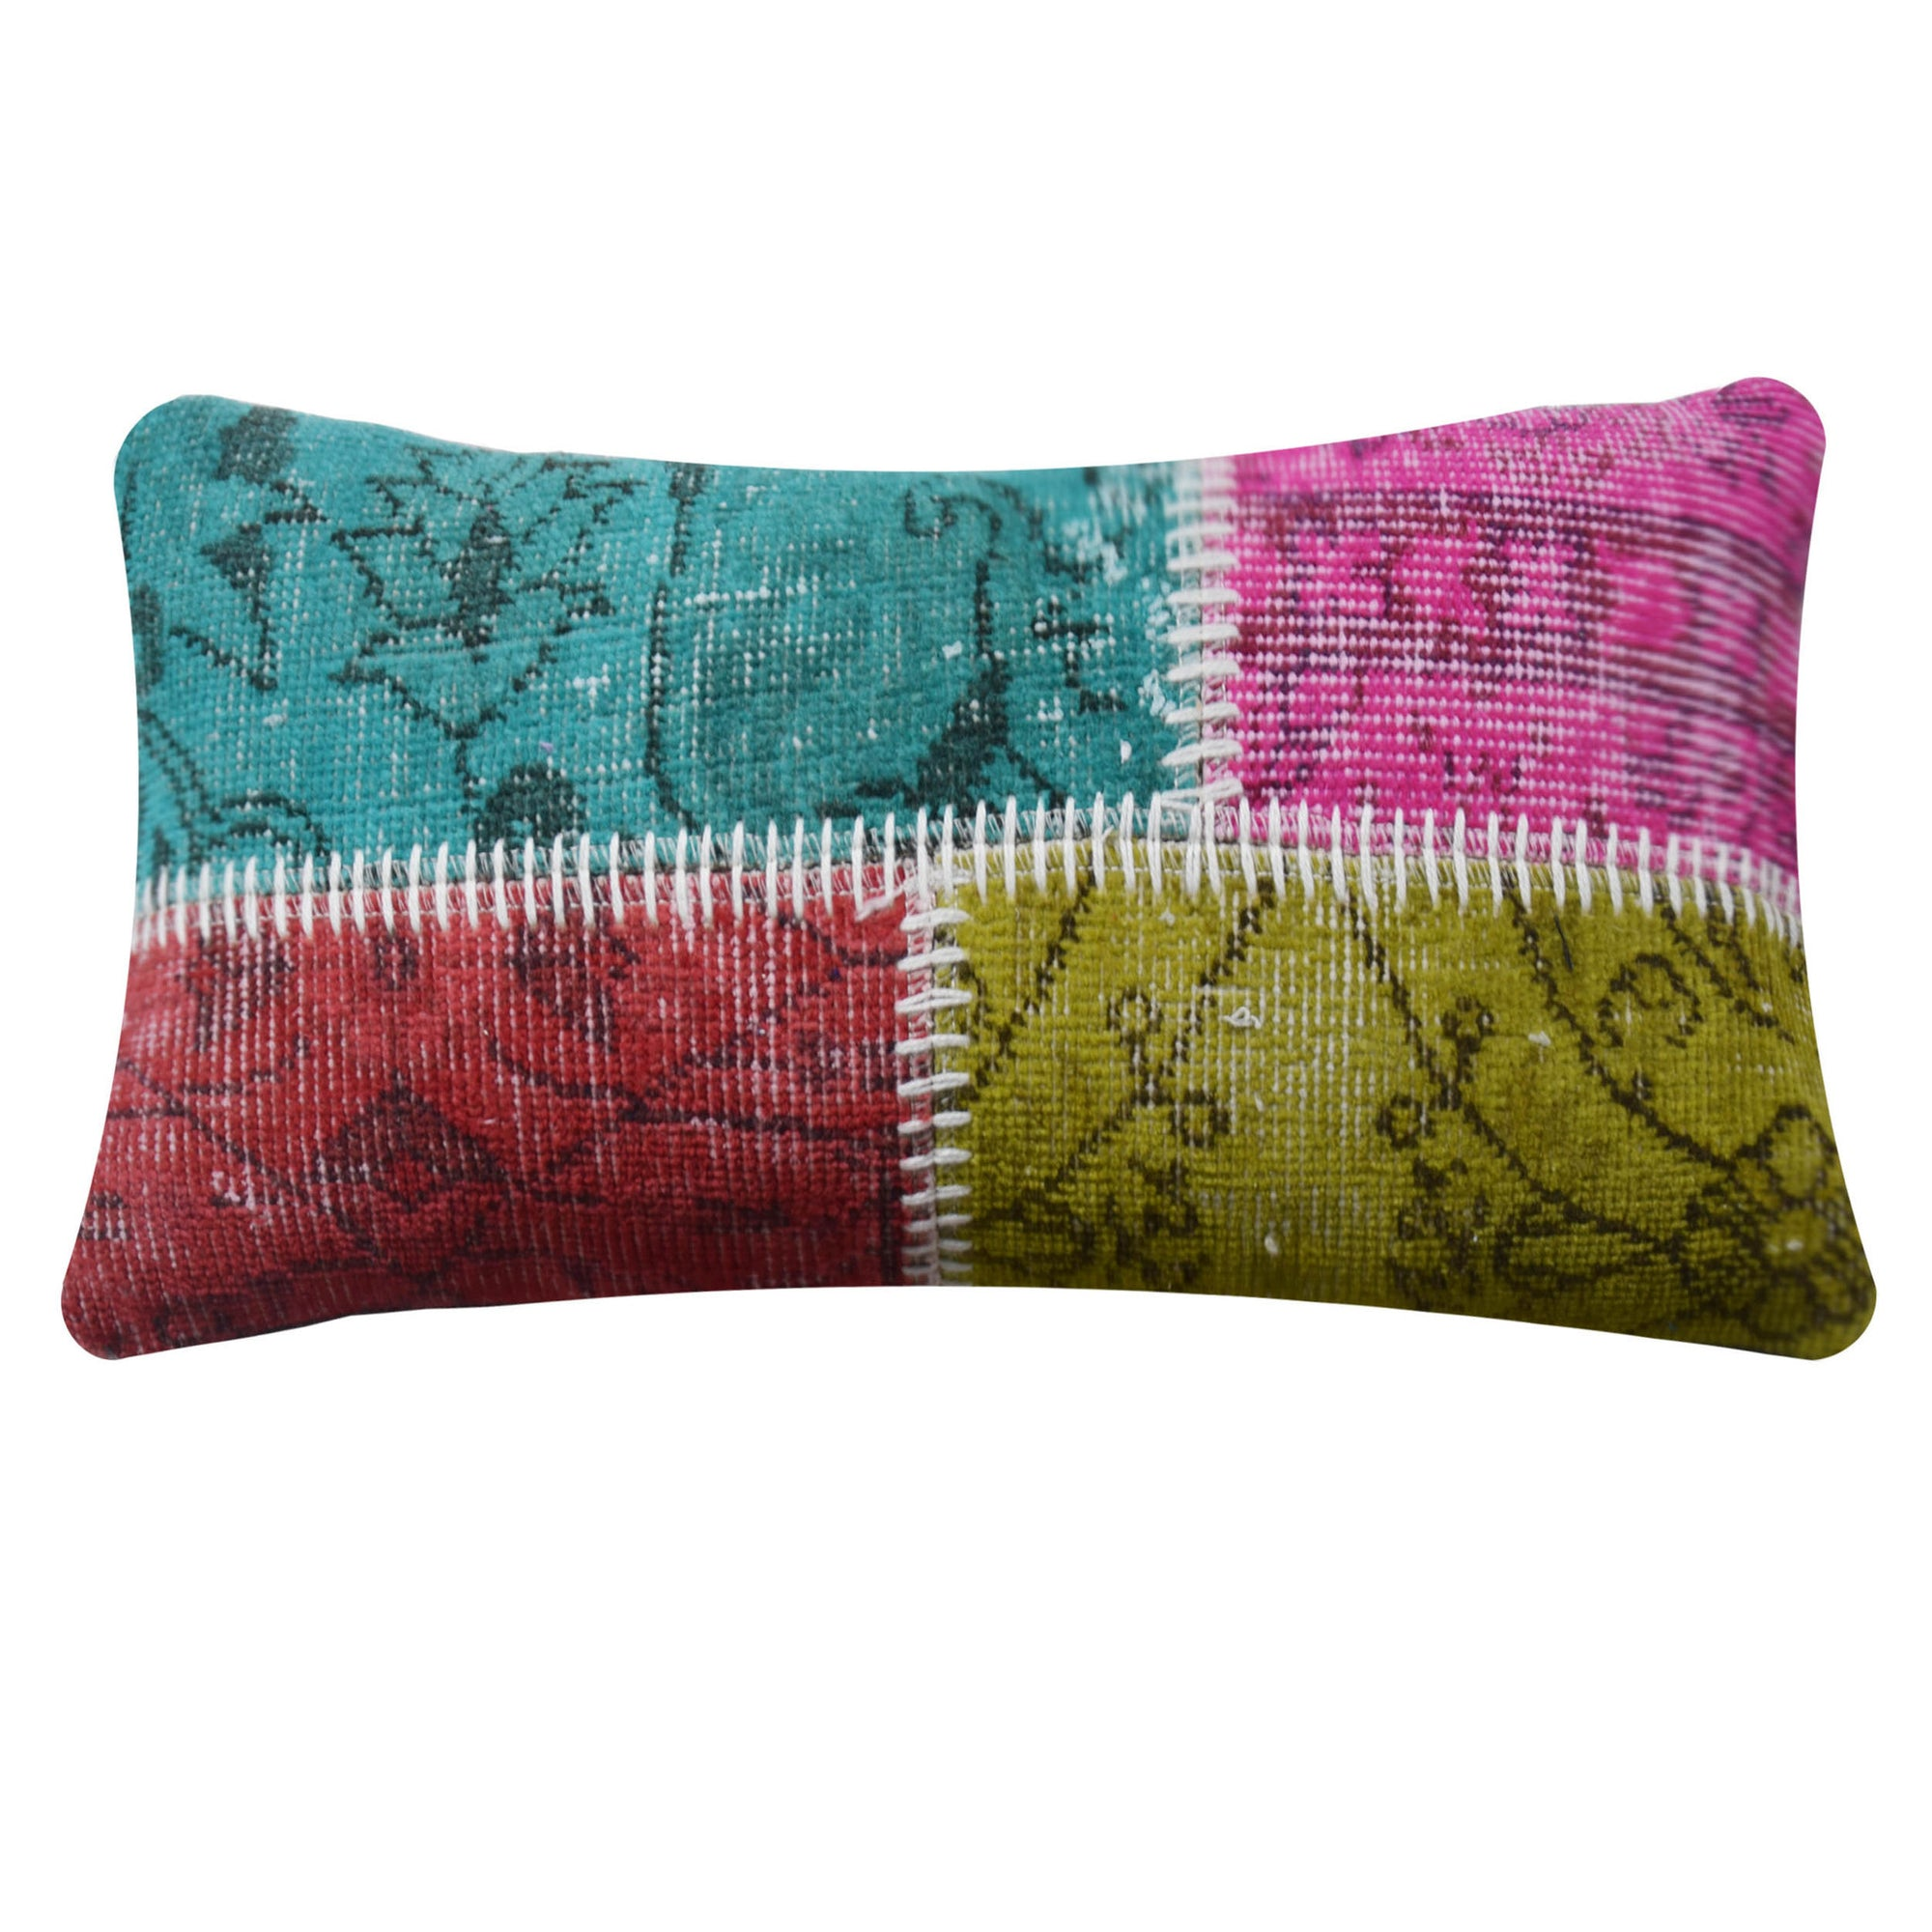 BURSA HANDMADE OVER DYED CUSHION COVER 30X60 SEC0072MS - ebarza